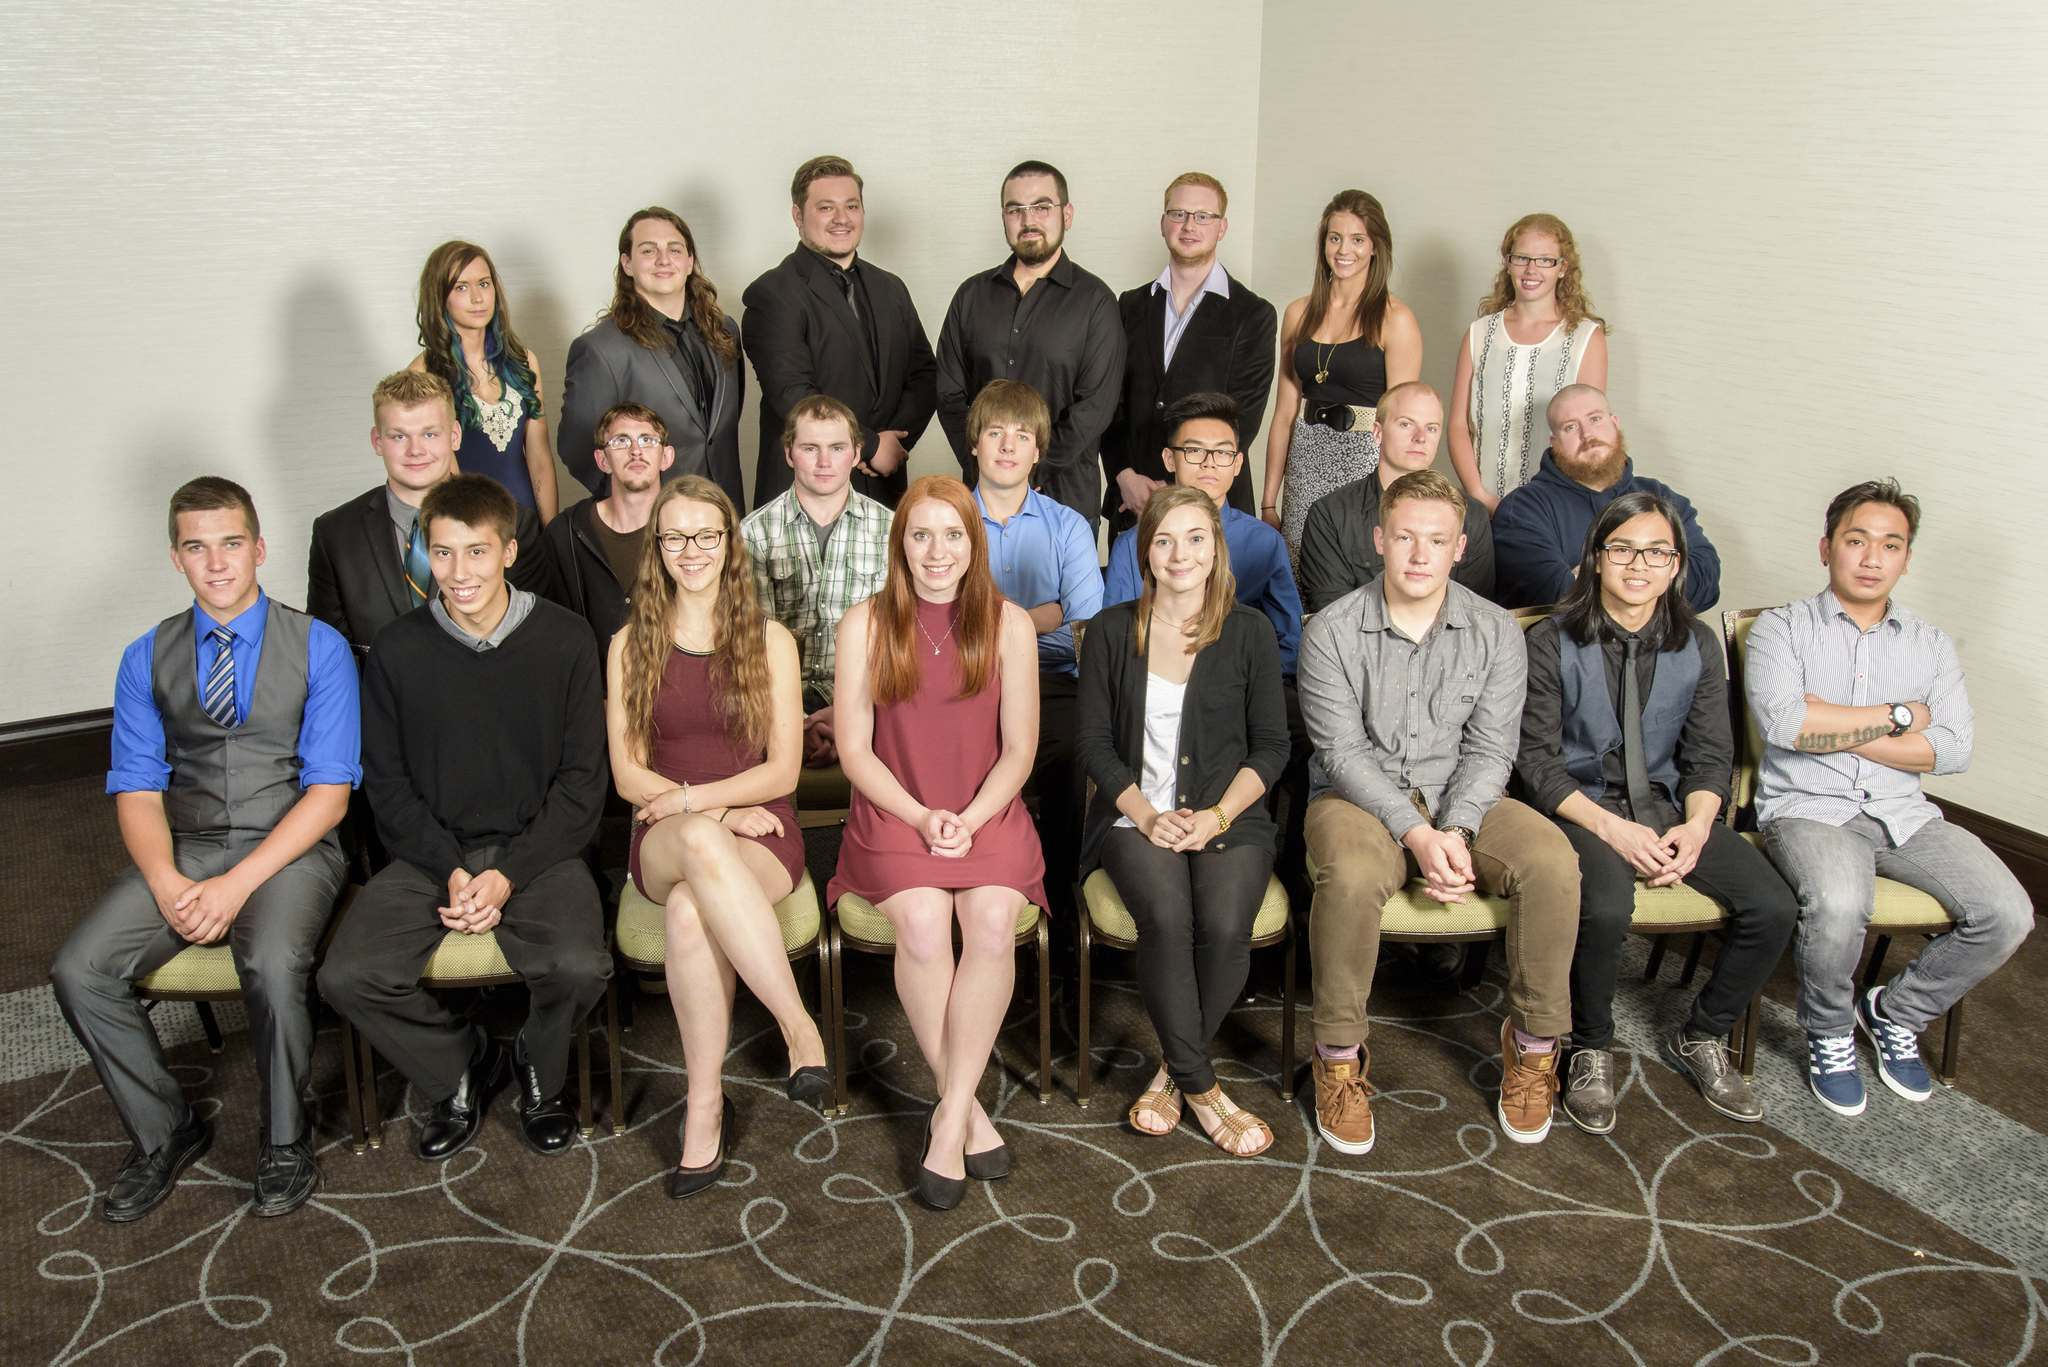 2016 Motor Vehicle Industry of Manitoba scholarship recipientsBack Row from left, Meghan Connor, Sebastien Fiola, Maxx Wazney, Dominic Fiest, Chris Maher, Alisa Everett, Bendrine Klassen. Middle row from left, Jessie Posthumus, Eric Seib, Calvin Kaartinen, Brayden Robb, Raphy Ople, Scott Hugill, Megatron Boultanyshen. Front row from left, Dustyn Zacharias, Darryl Merritt, Ashley Weber, Dessiray Nault, Carissa Ness, Andrew Friesen, Rico Maceda, Arnel Marasigan